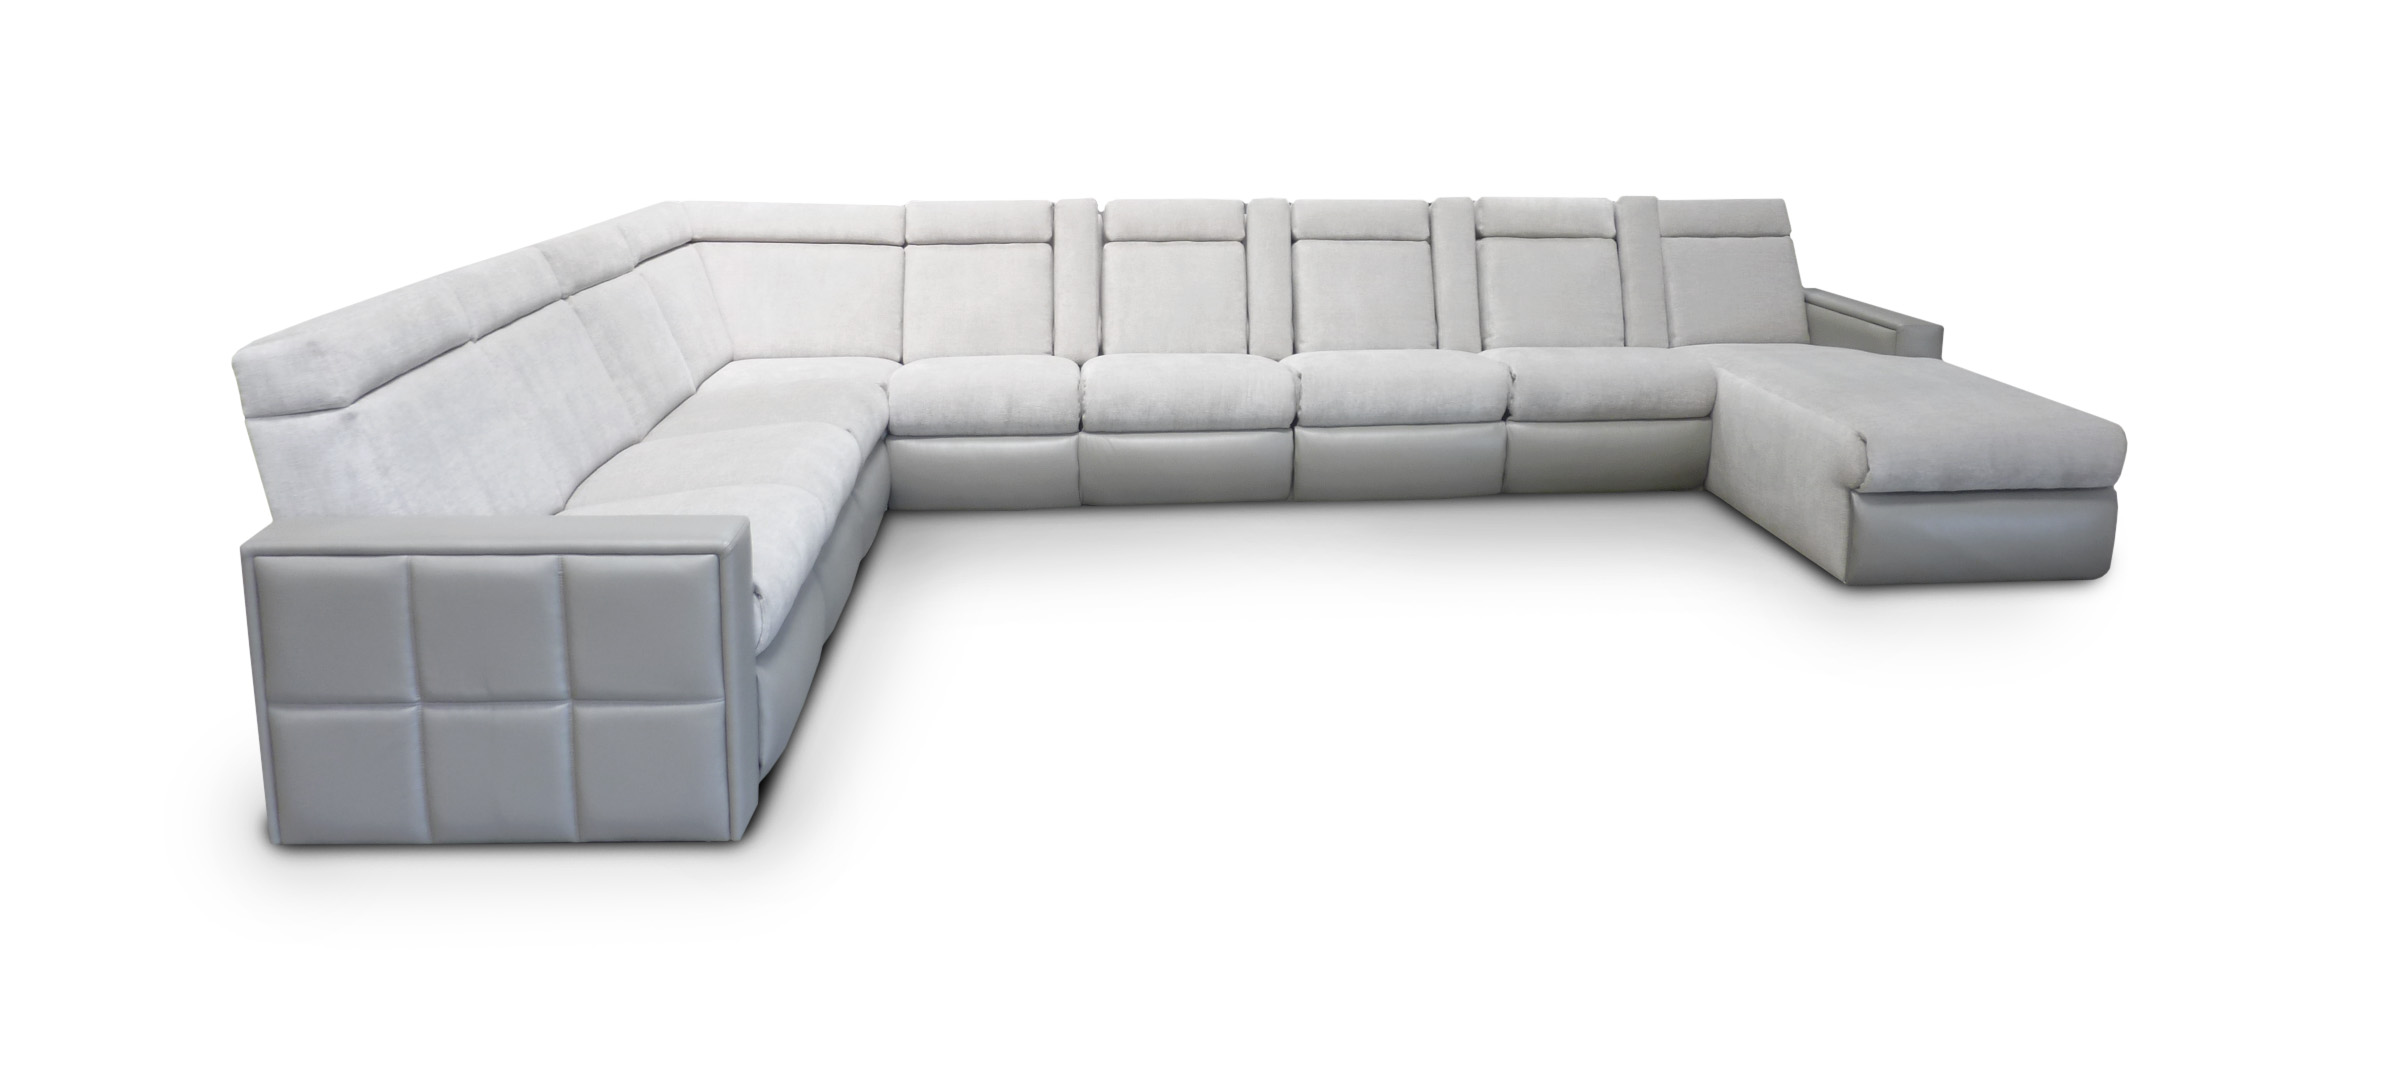 Sectional; Motorized Adjustable Headrest; Removable Head Pillows; Motorized Chaise Footrest; Quilted Arm Detail; D-Box; Motorized Lumbar Support; Storage in Chaise